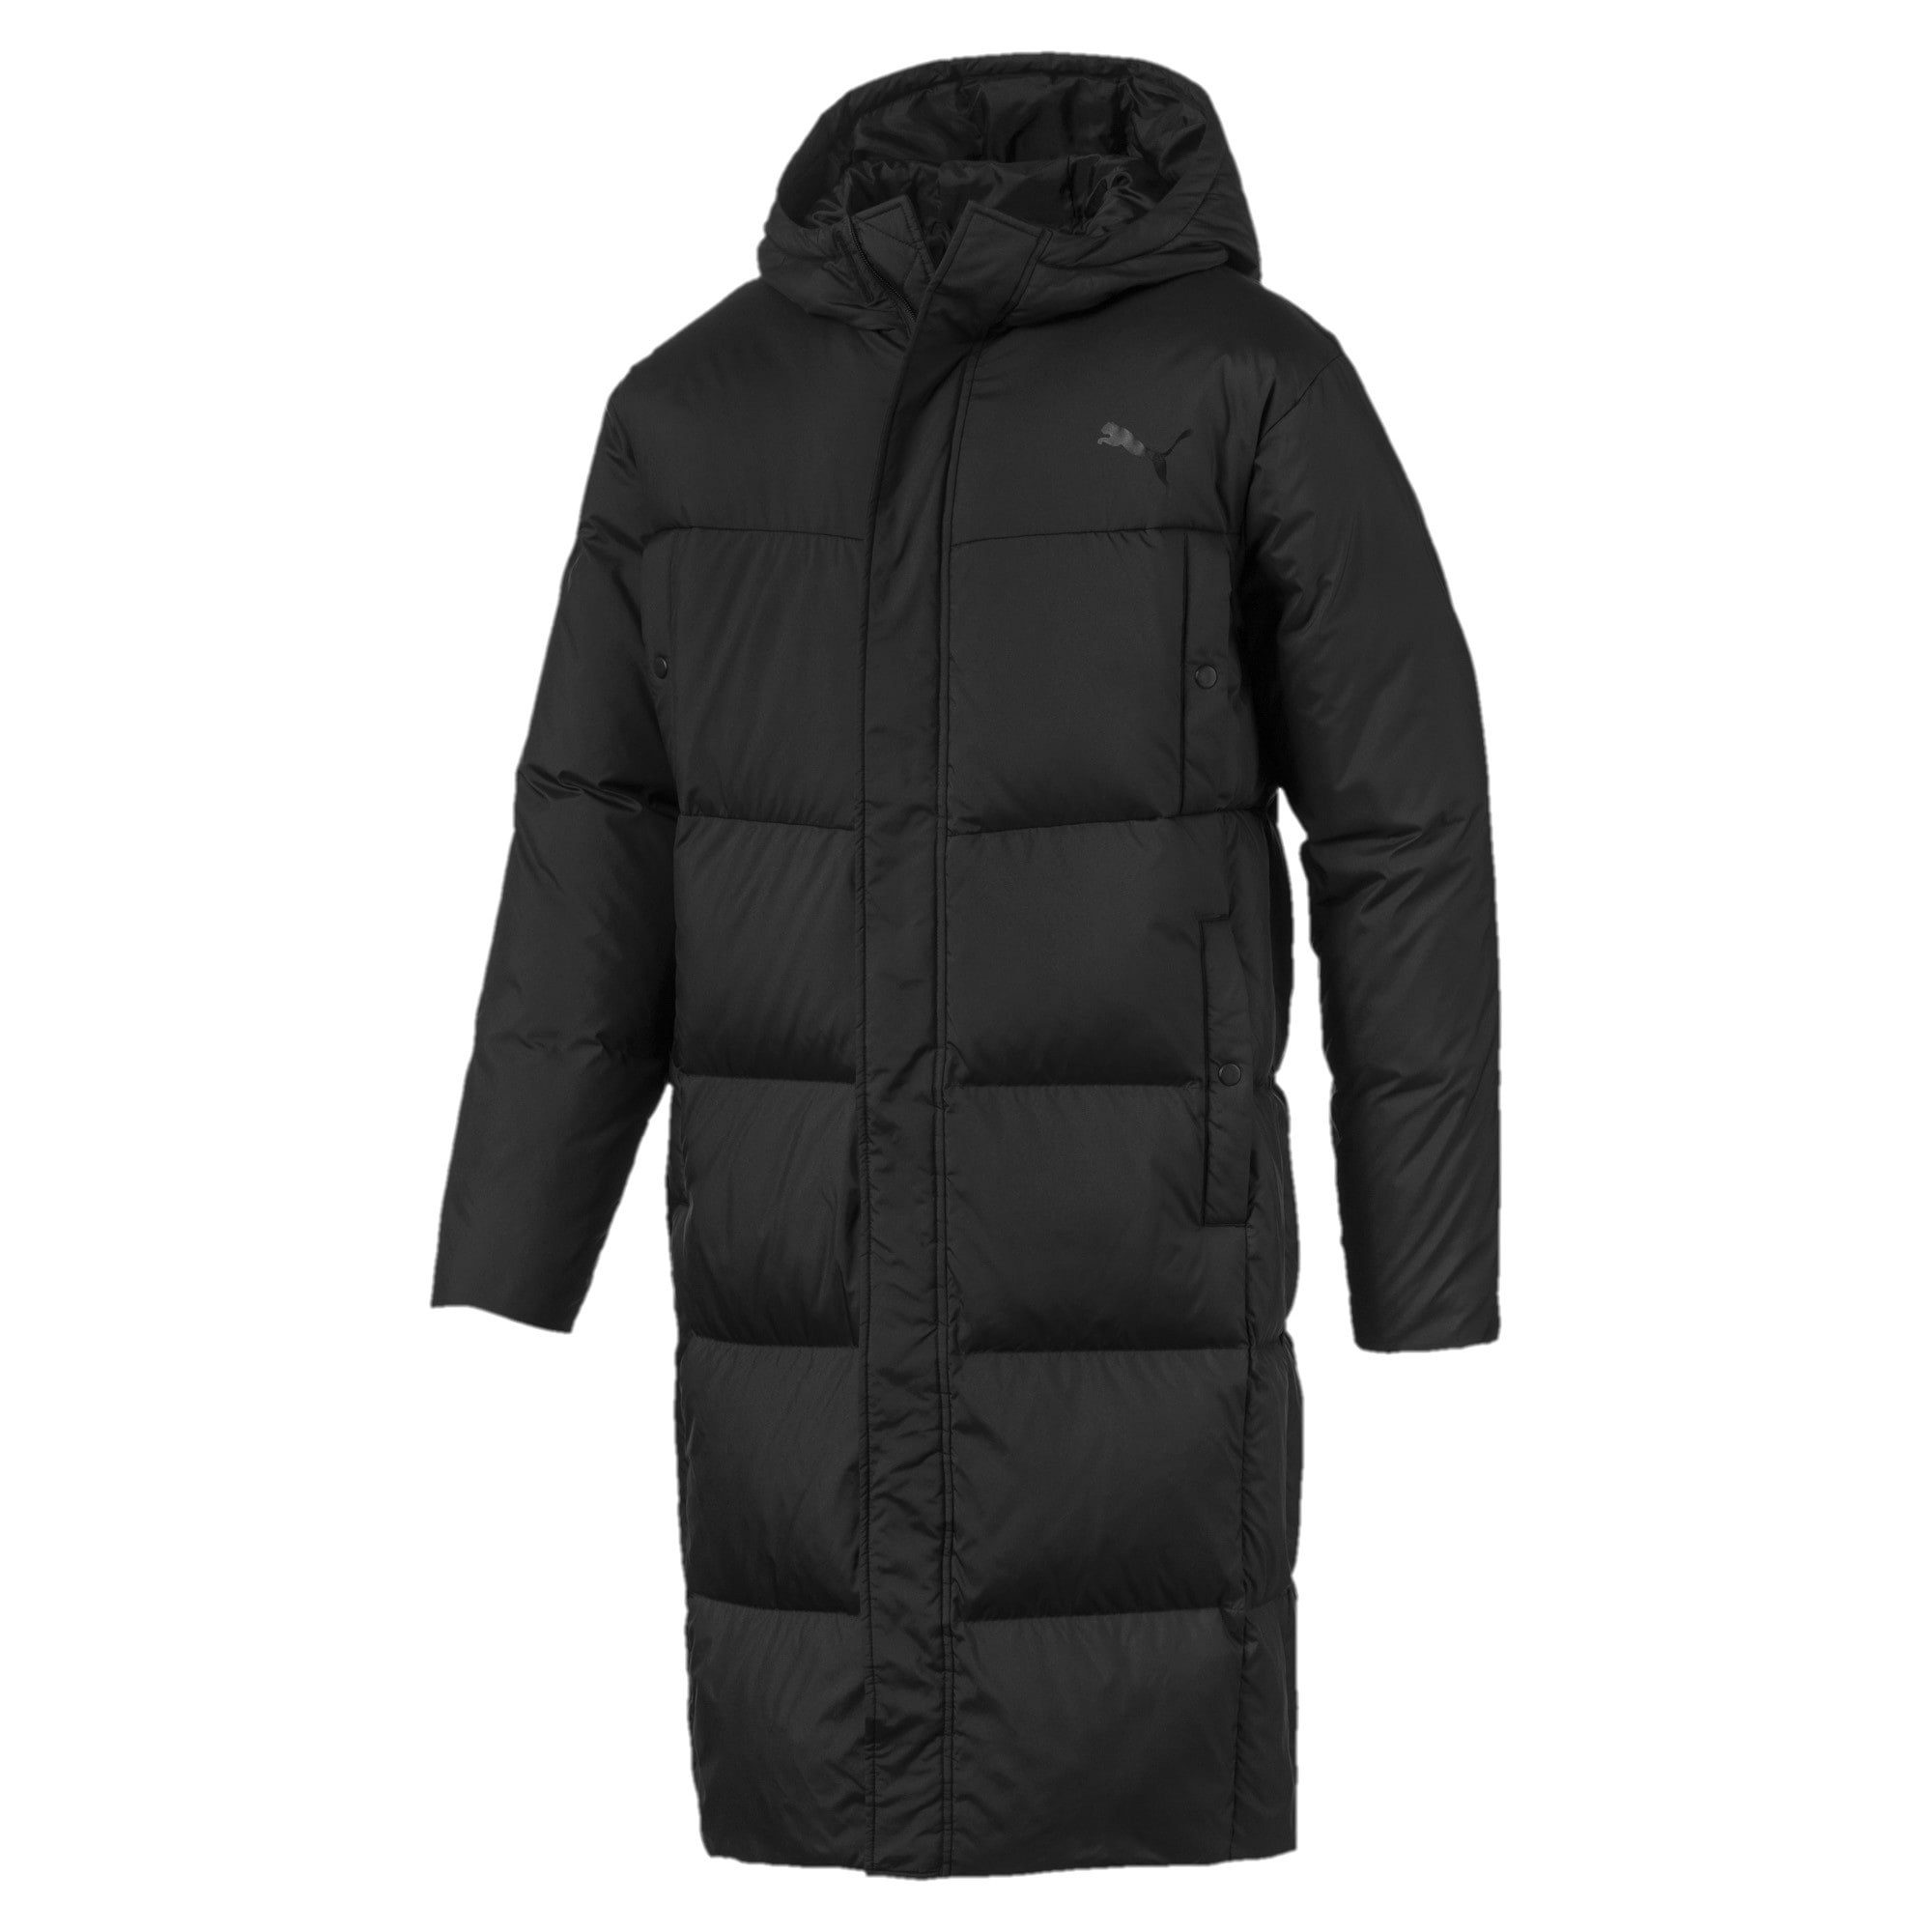 Anteprima 4 di Long Oversized Men's Hooded Coat, Puma Black, medio